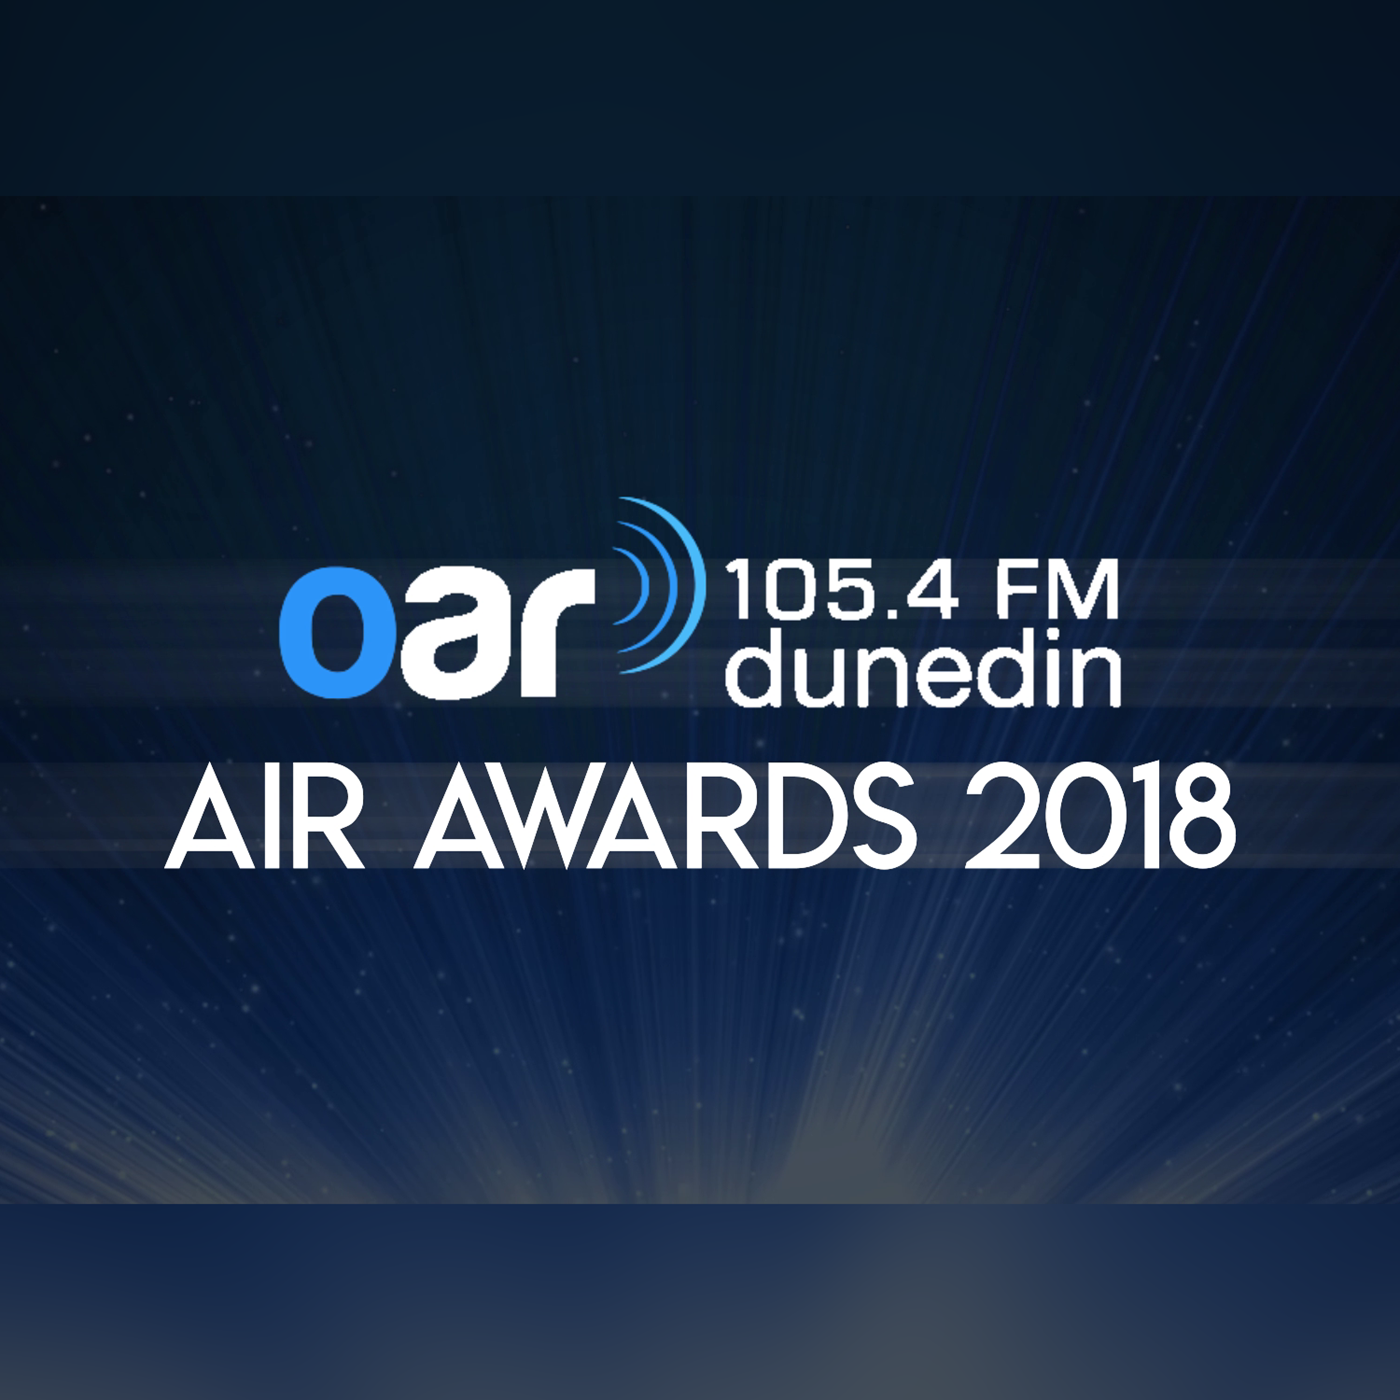 OAR FM Dunedin Air Awards Winners 2018